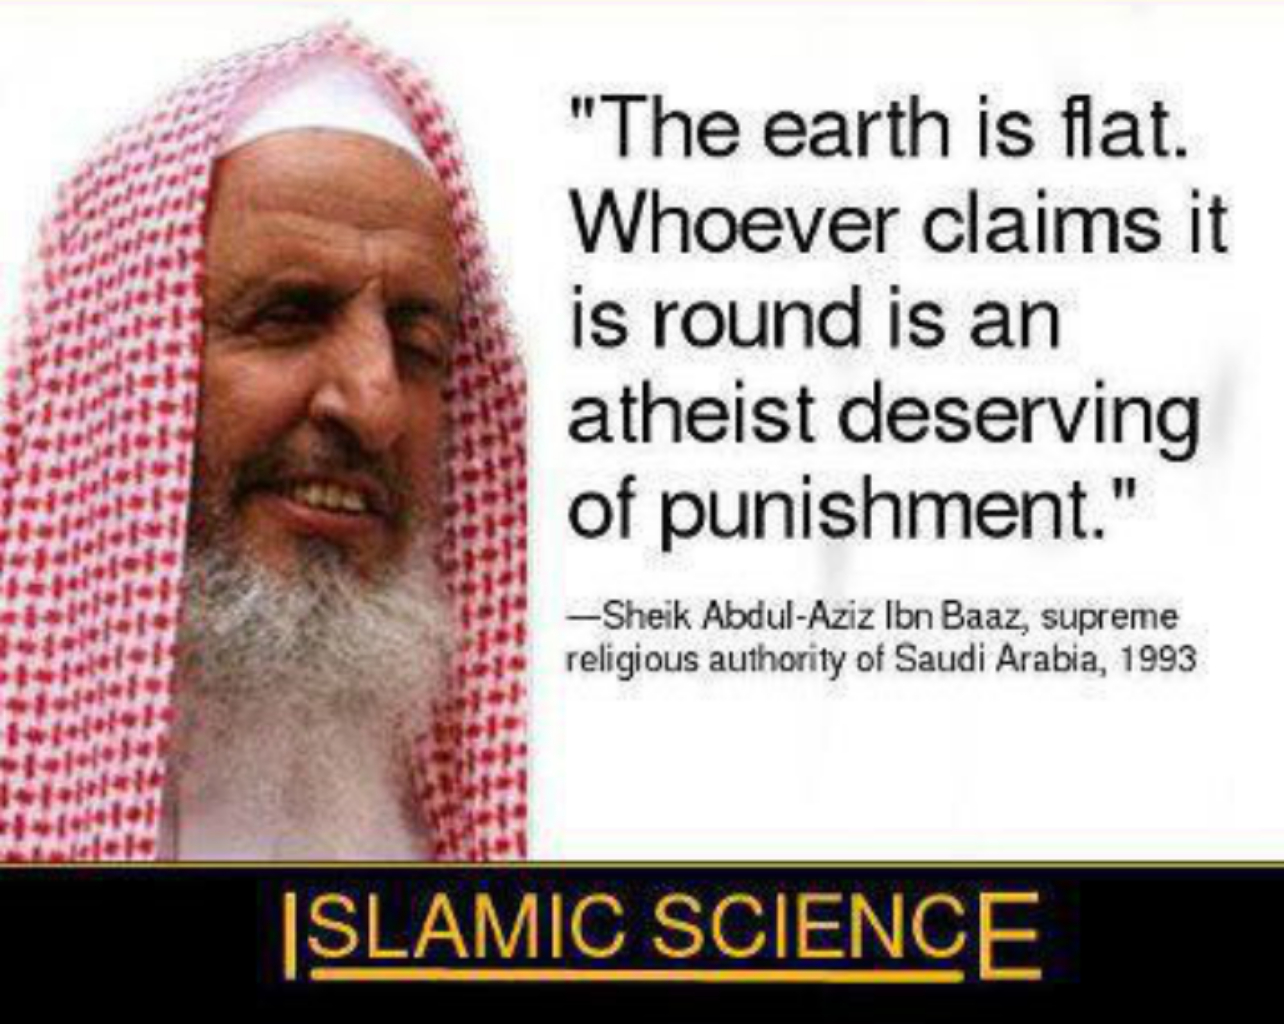 flat earth hadith scientific error science quran Sheikh Abdul-Aziz Ibn Baaz Saudi Arabia atheist punishment islamic science